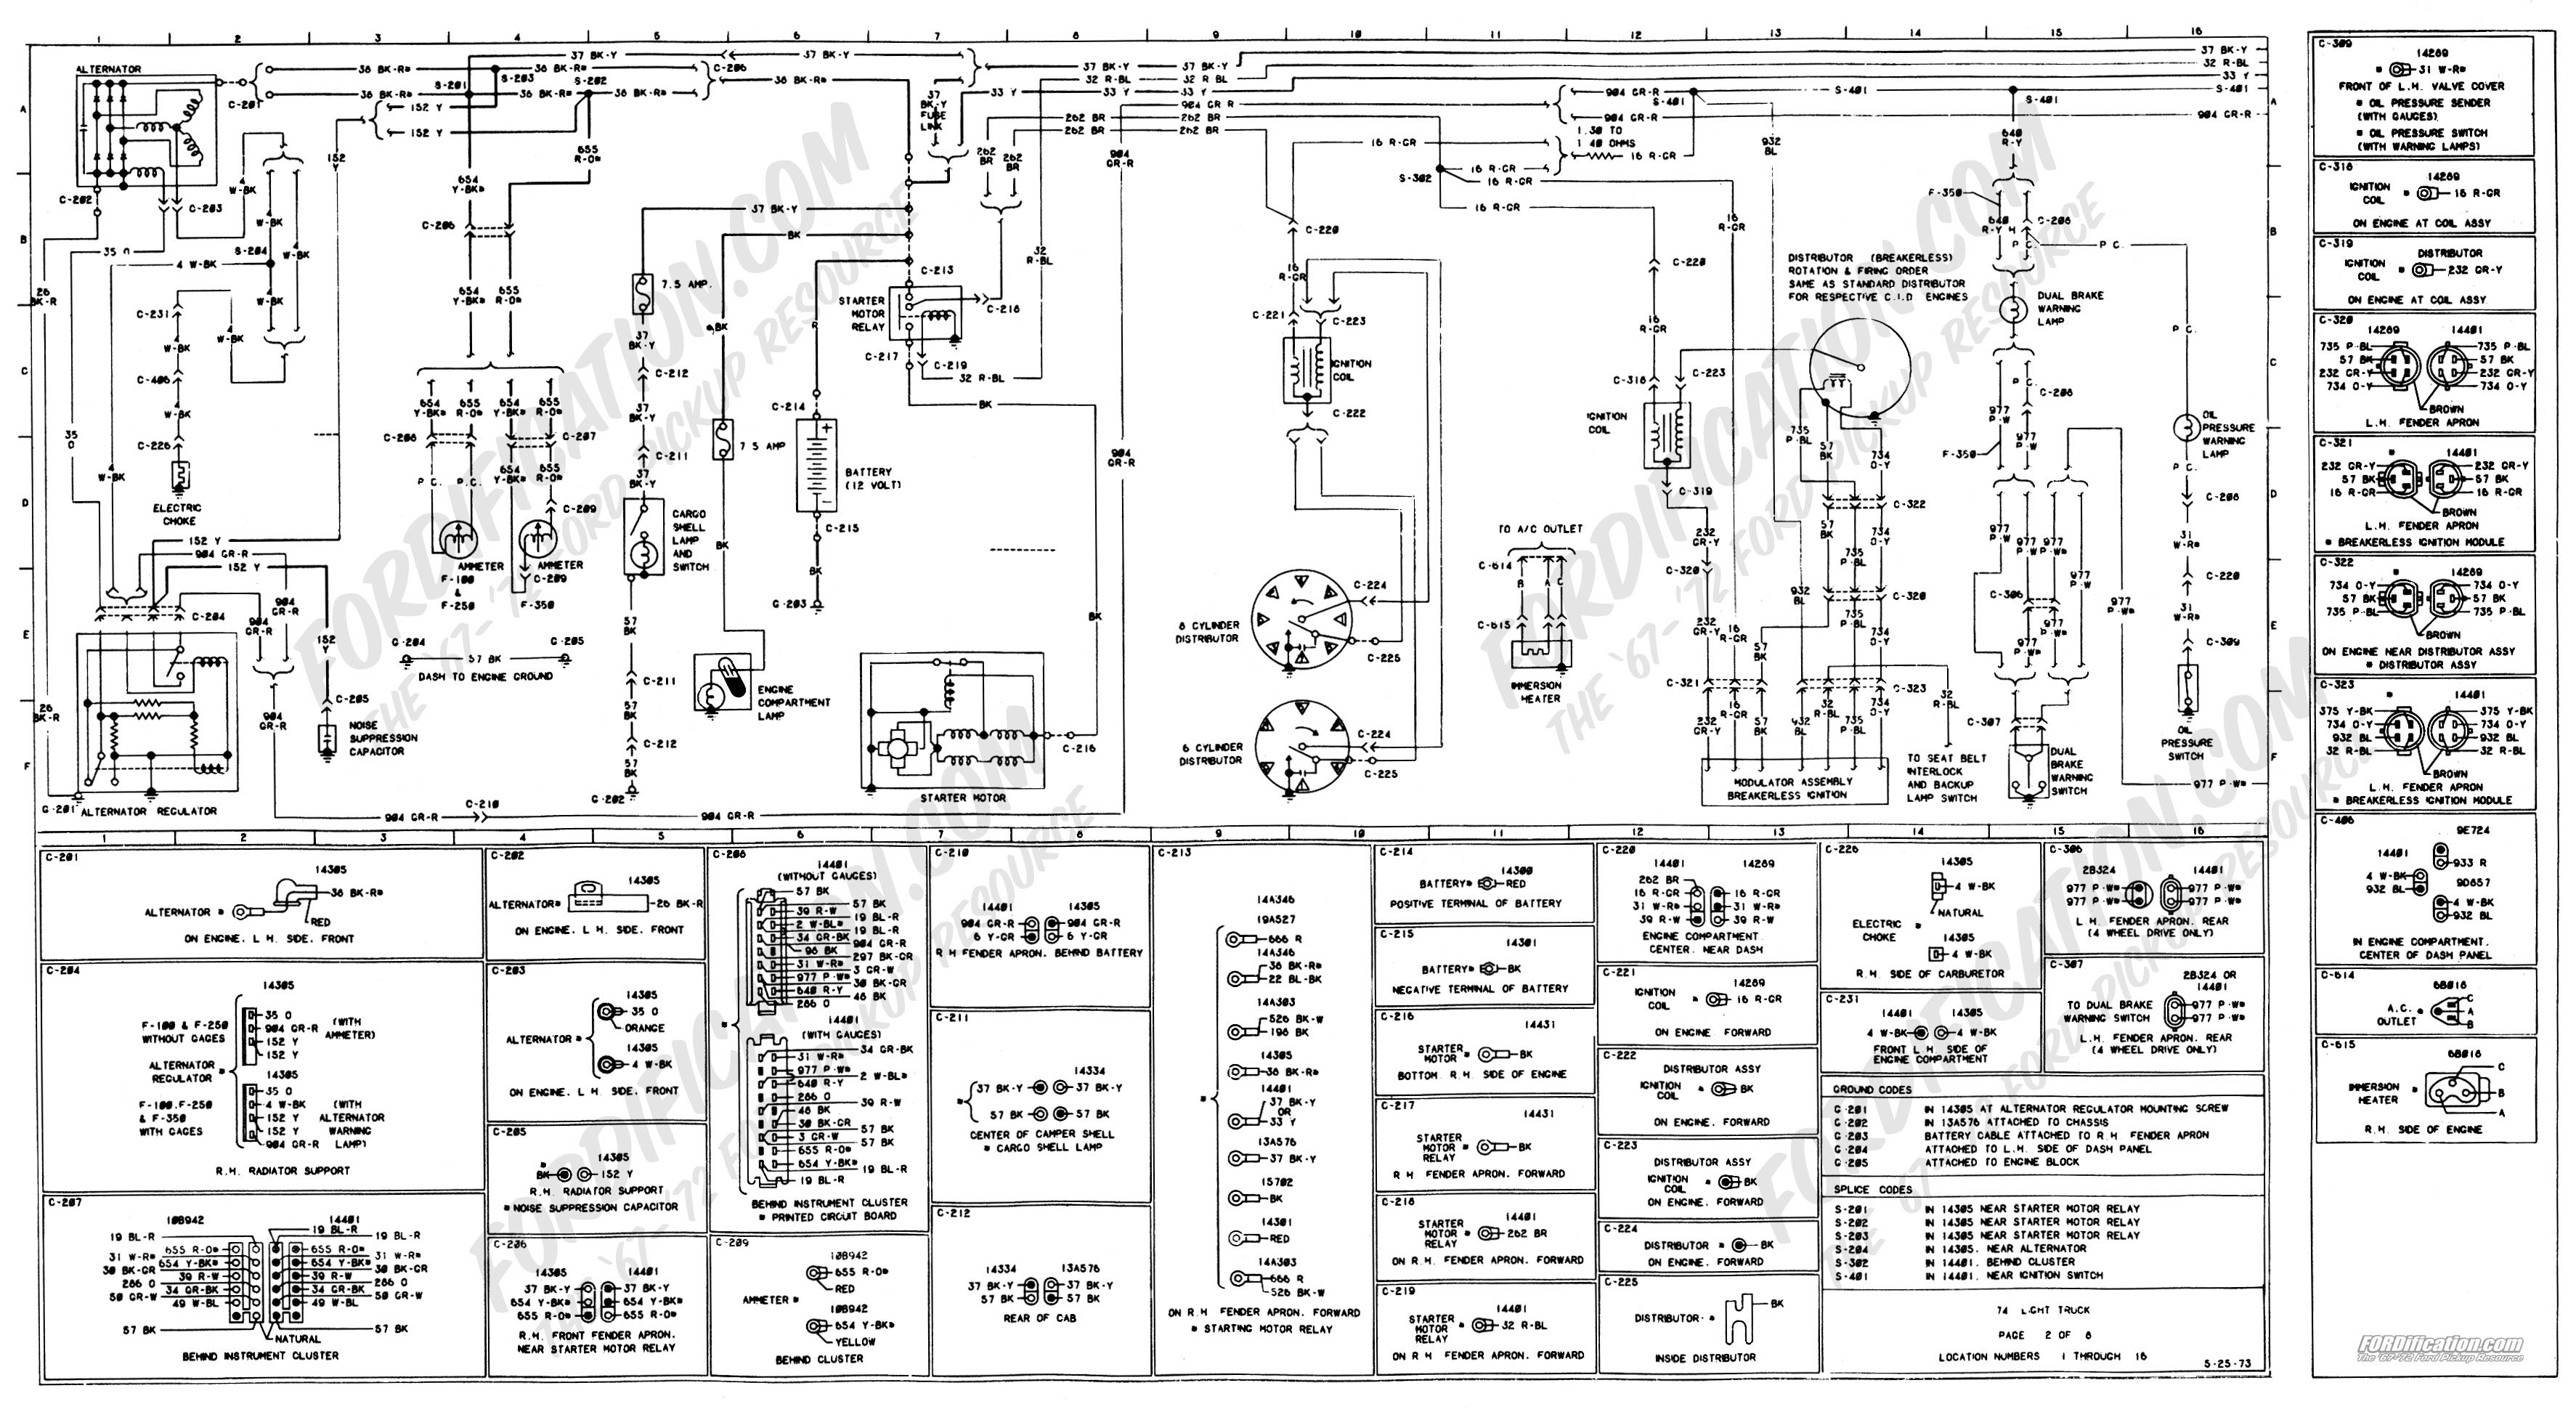 1973 F700 Wiring Diagram - Auto Electrical Wiring Diagram •  F Wiring Diagram on f250 wiring diagram, b100 wiring diagram, 1984 dodge wiper wiring diagram, s300 wiring diagram, x300 wiring diagram, f550 wiring diagram, f510 wiring diagram, dodge ram alternator wiring diagram, 1973 ford truck wiring diagram, 1984 dodge truck wiring diagram, f500 wiring diagram, 1950 ford truck wiring diagram, f750 wiring diagram, ford truck alternator wiring diagram, e300 wiring diagram, p200 wiring diagram,